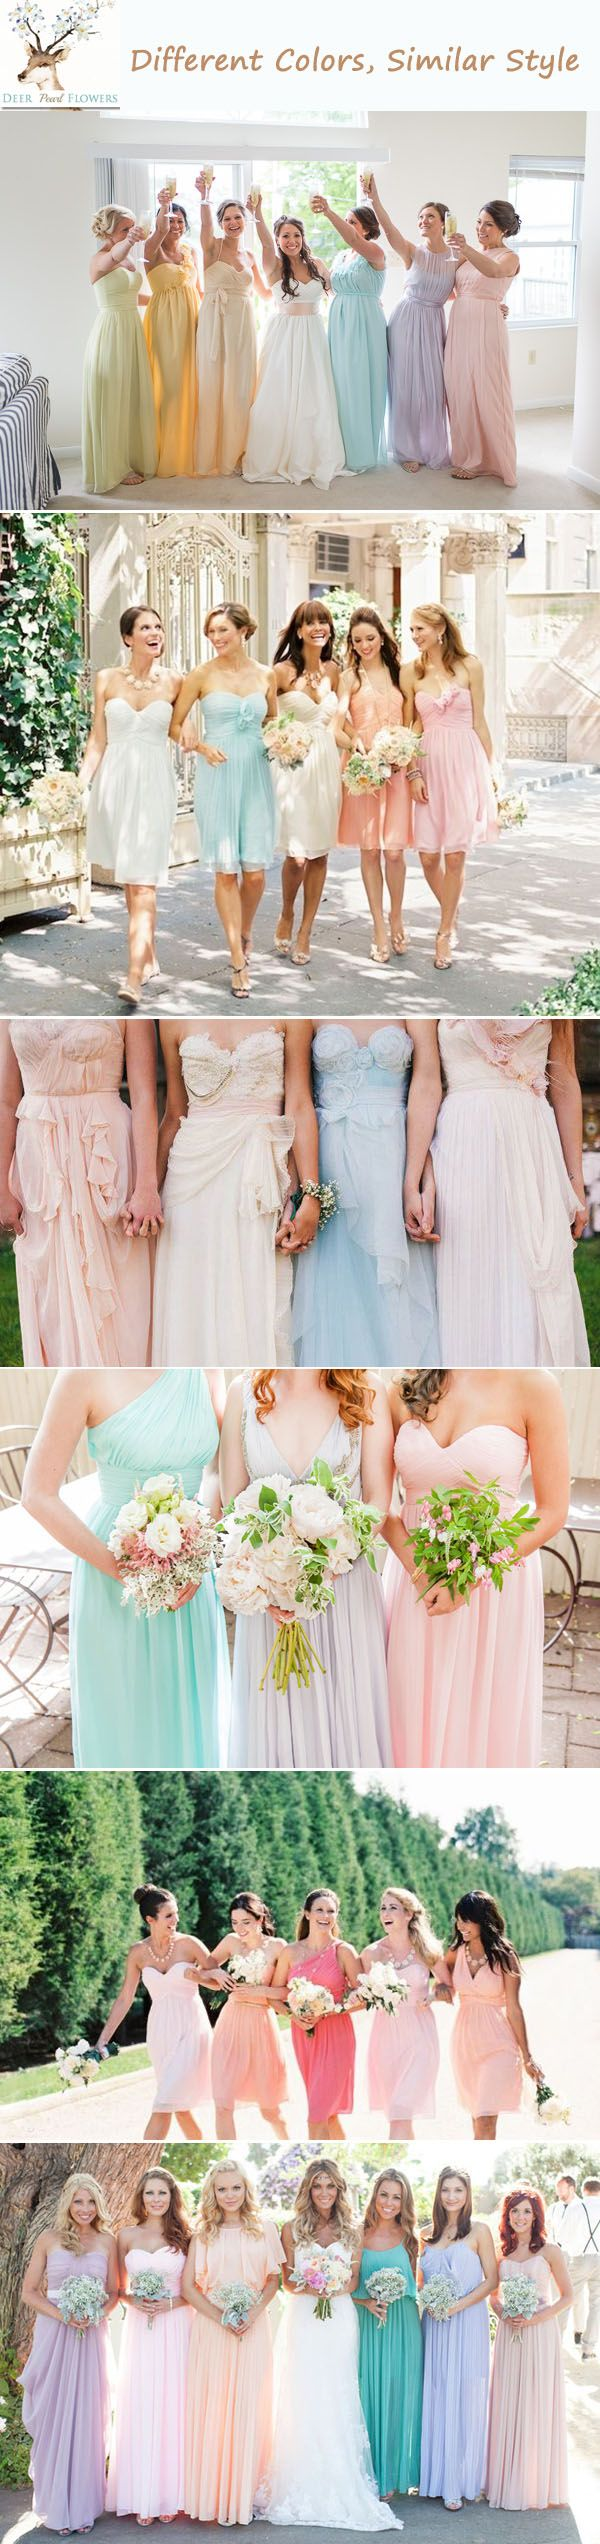 pastel wedding ideas - mismatch bridesmaid dresses - different color similar style